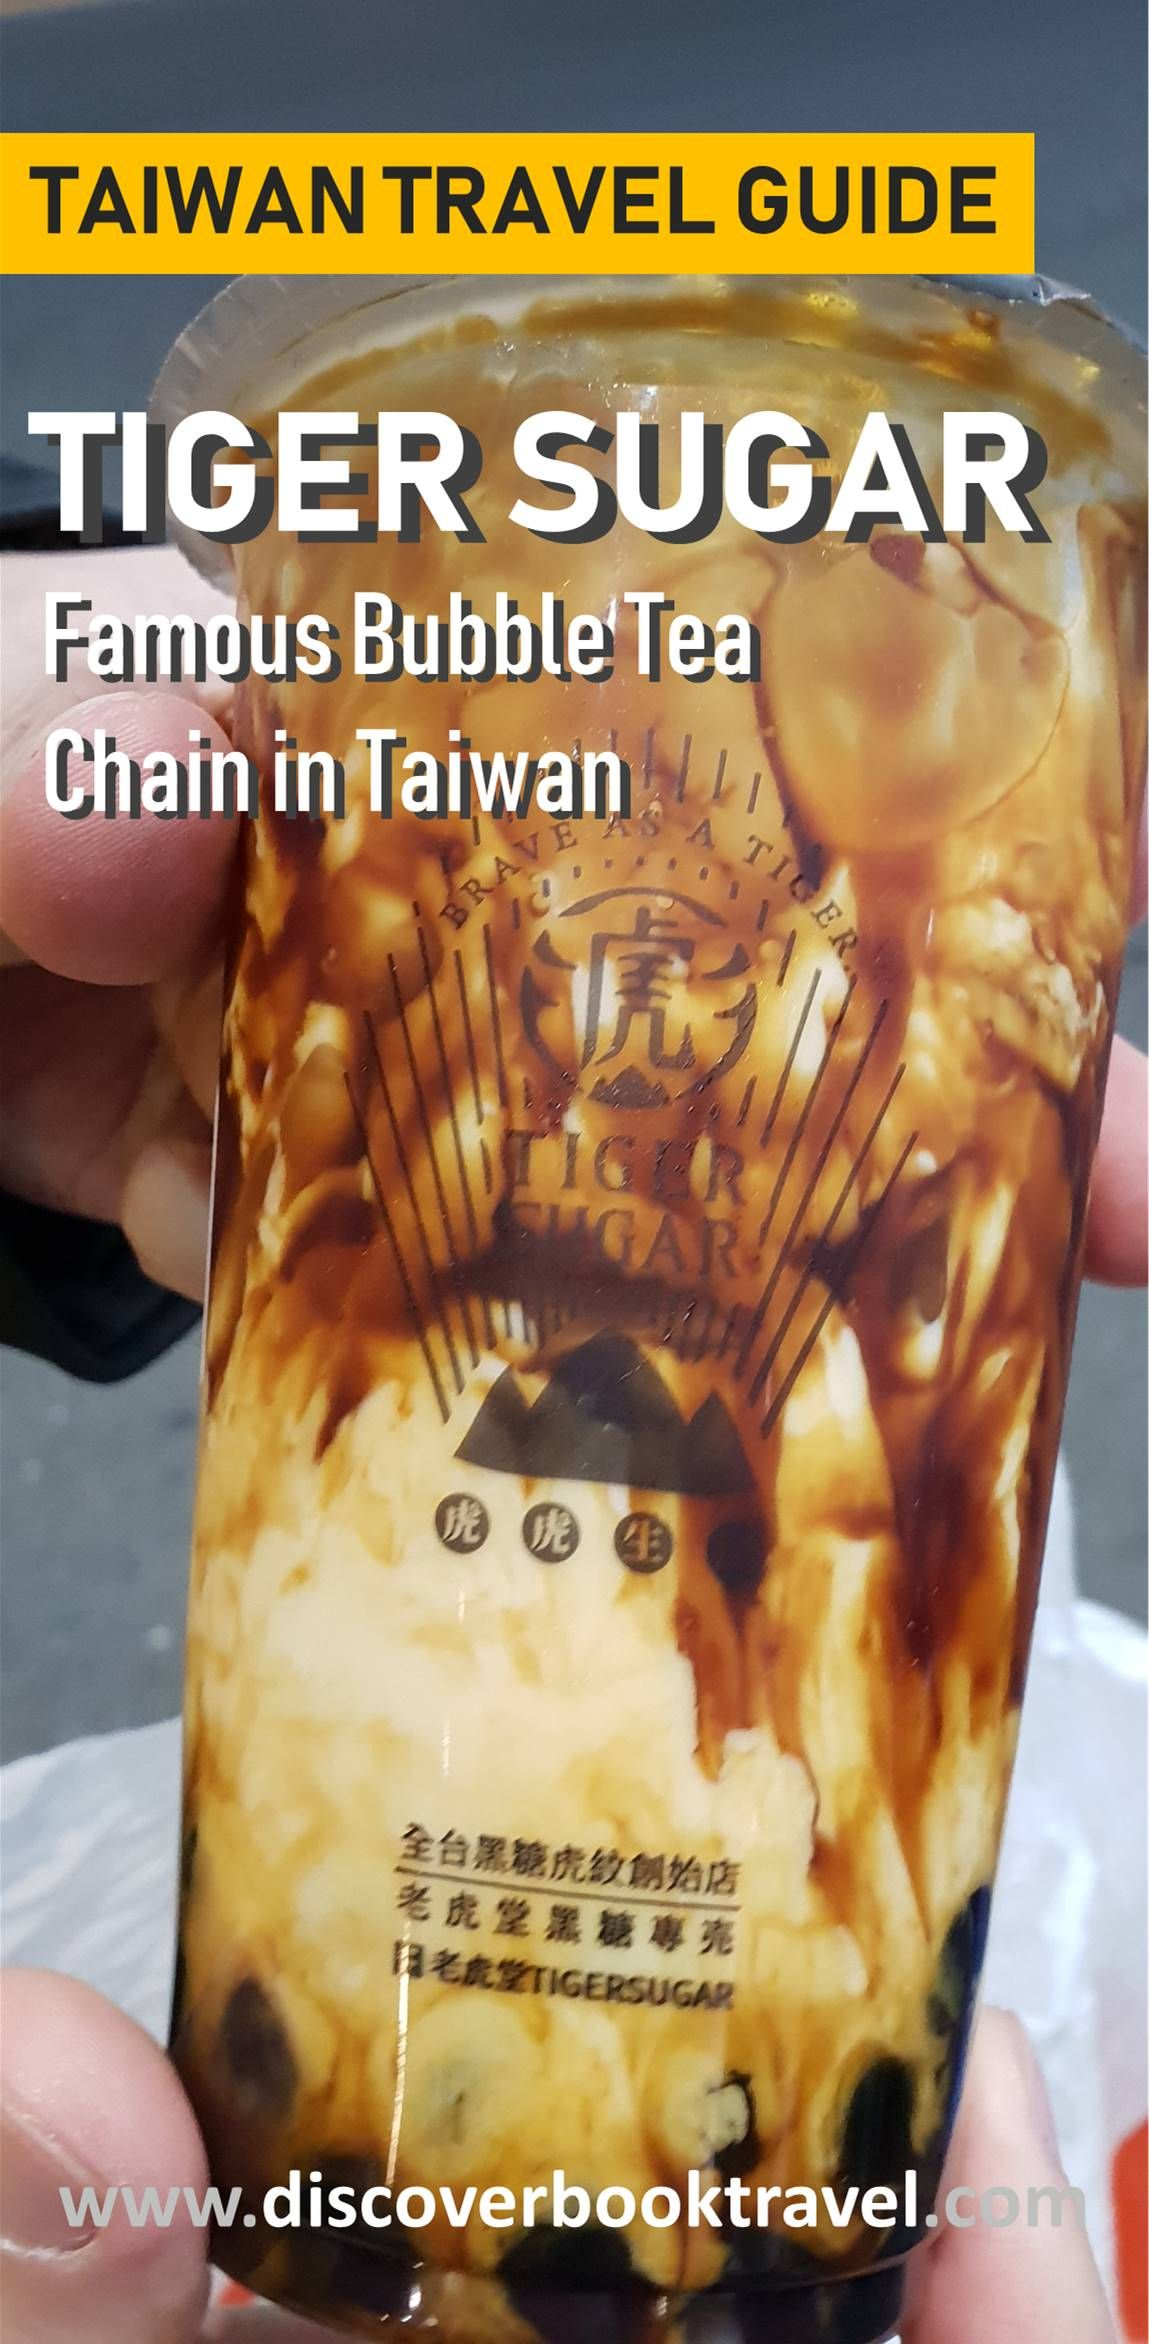 Tiger Sugar (老虎堂) - Famous Bubble Tea Chain in Taiwan